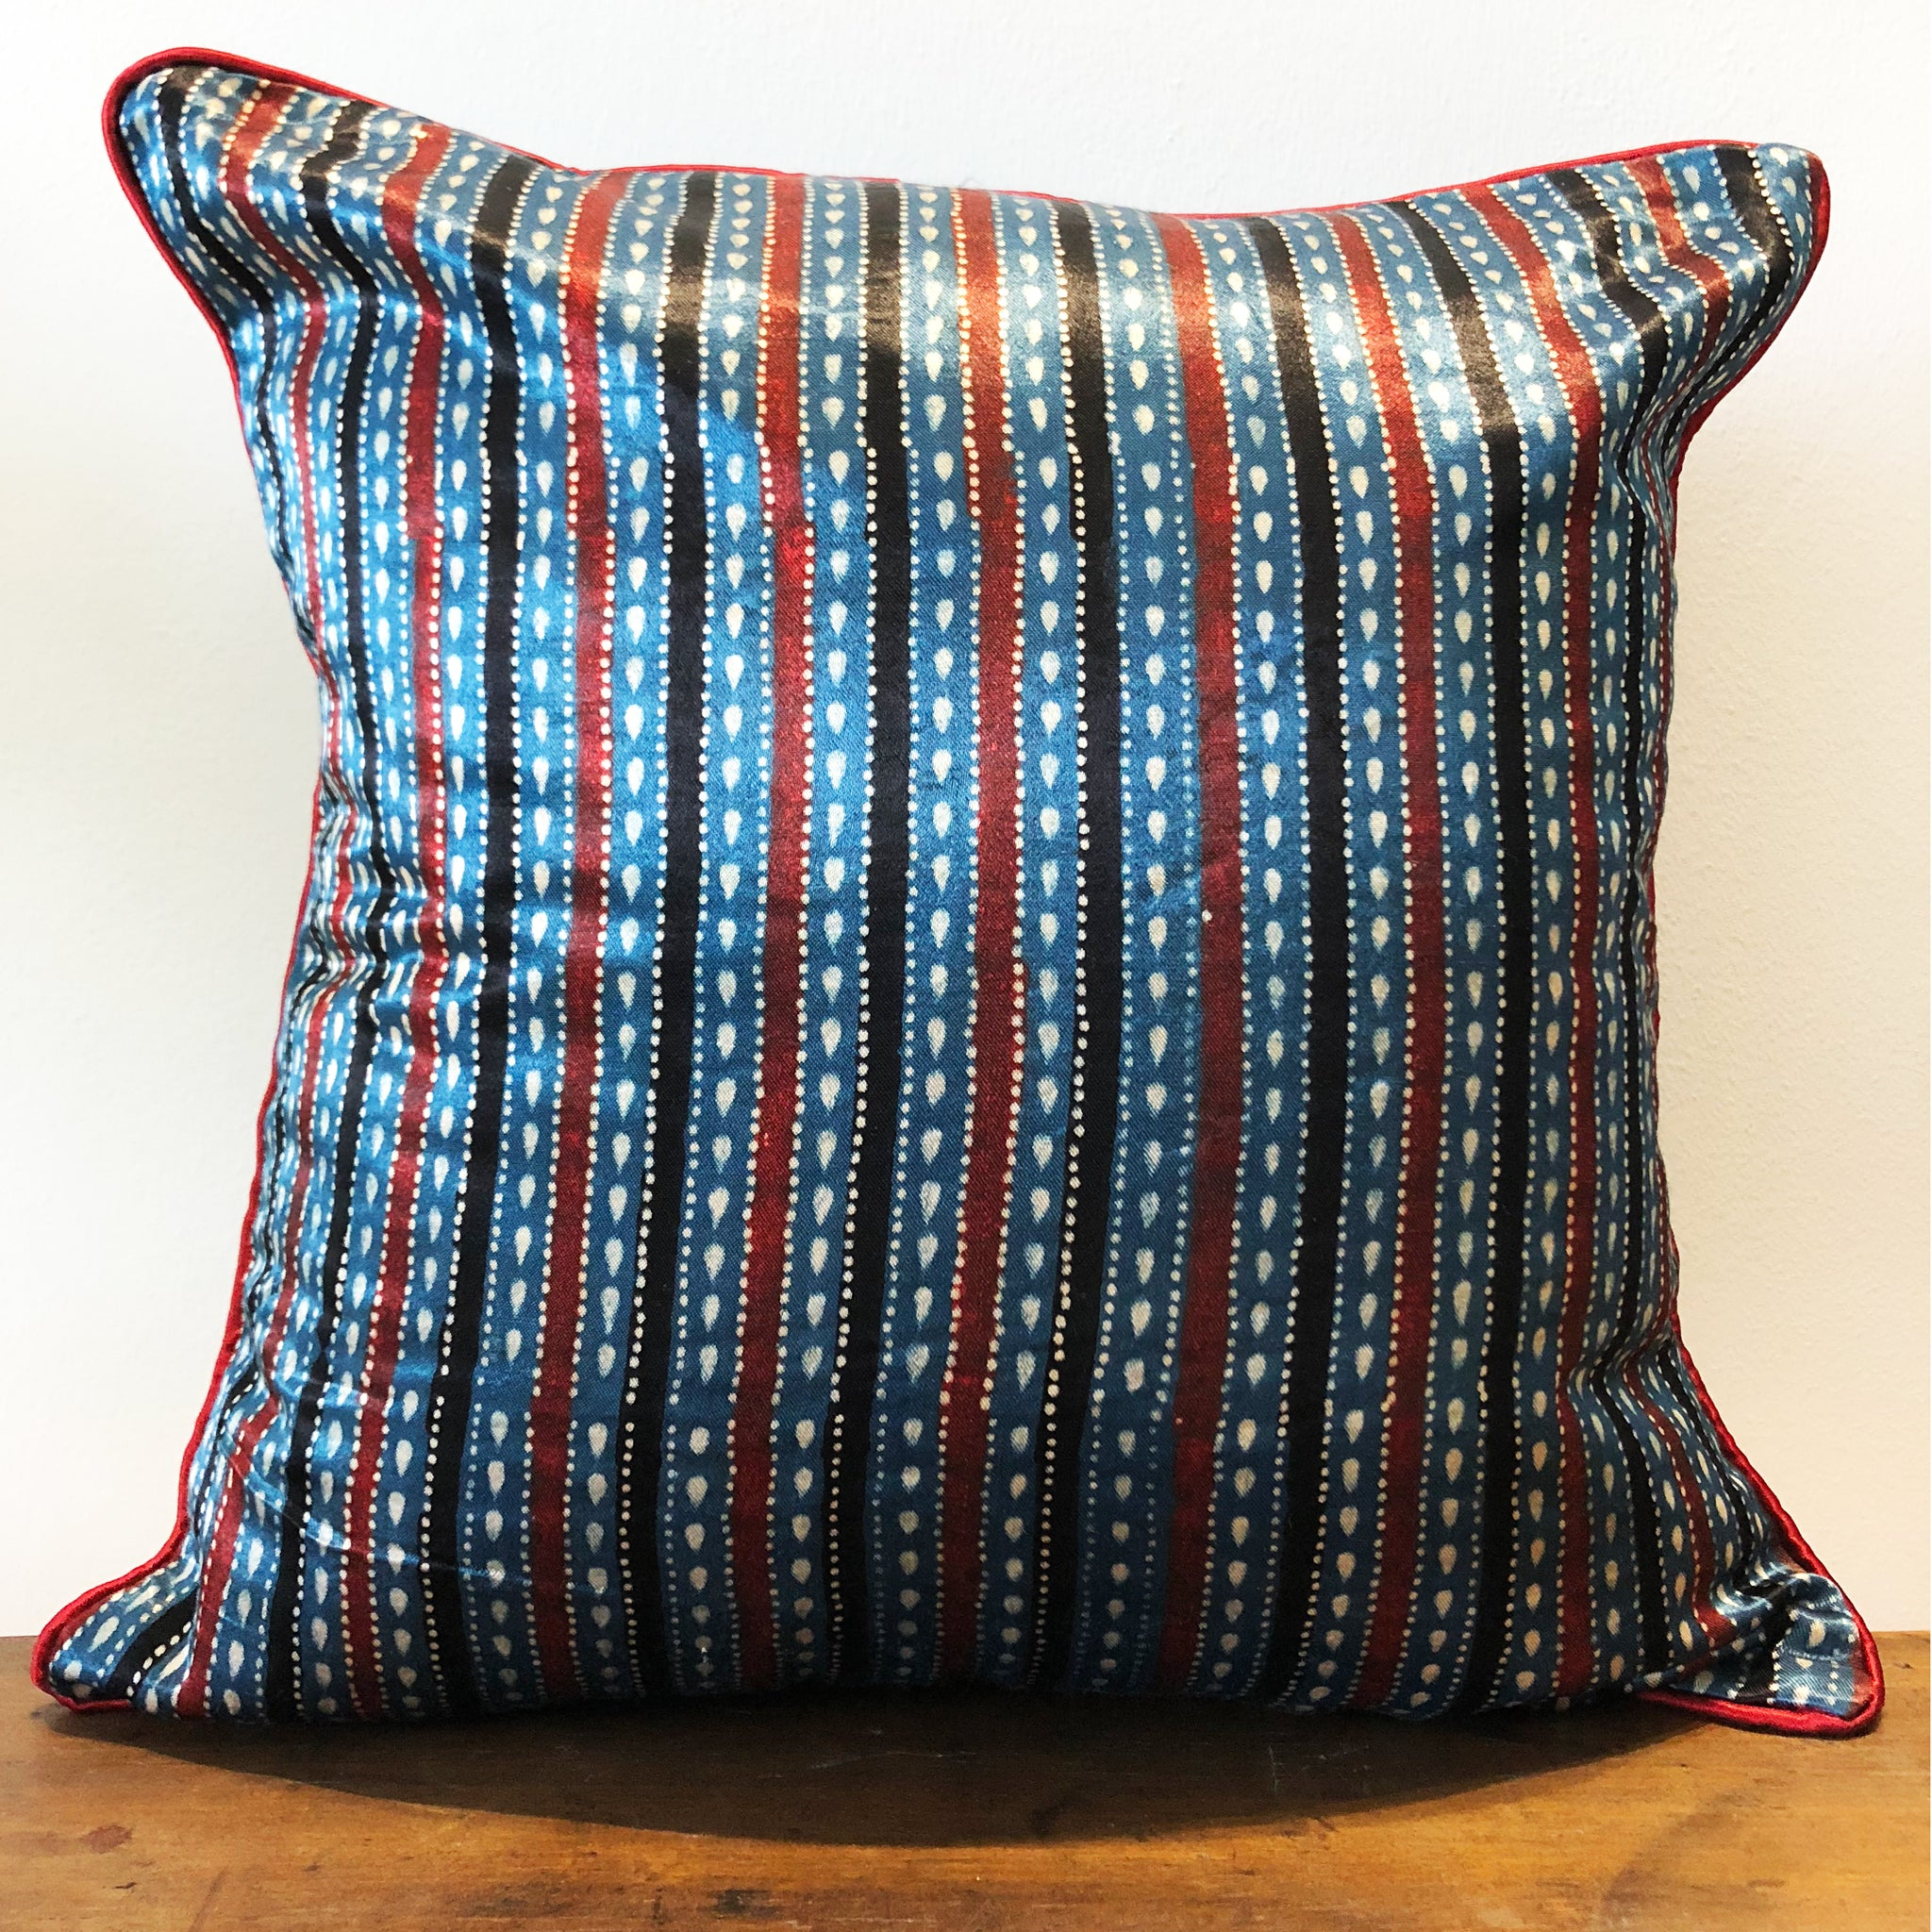 Handmade cushion covers | Singapore